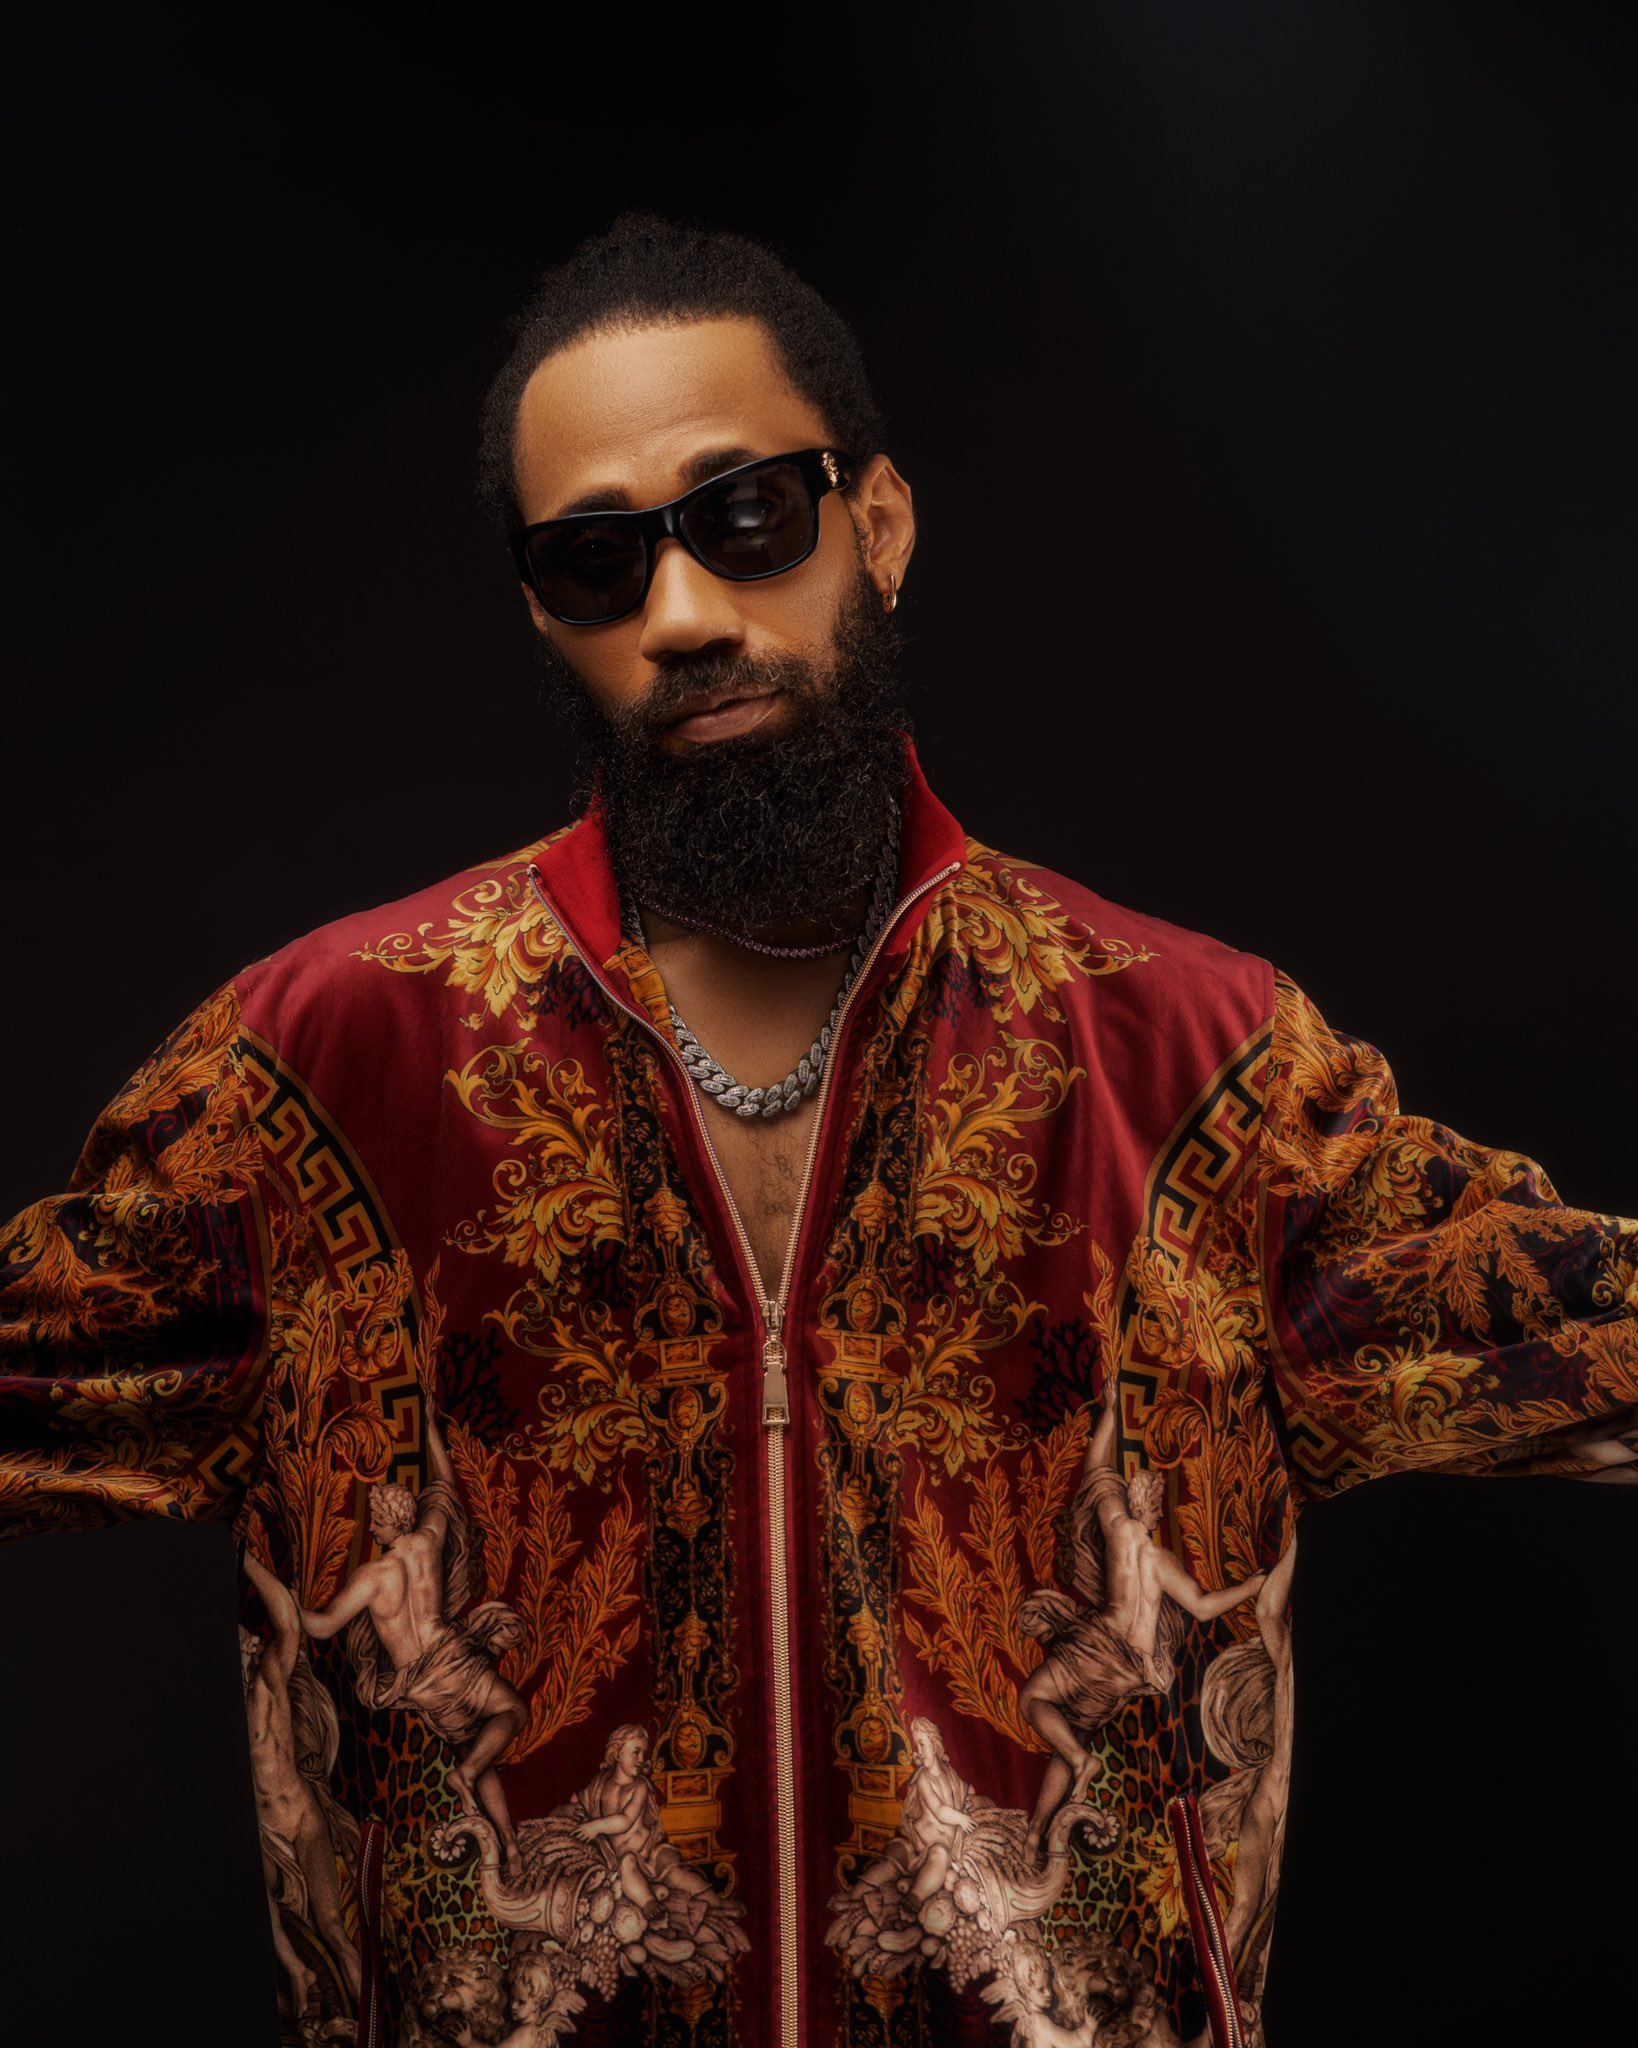 #EndSARS: Phyno reveals that his life and other protesters' have been threatened by Enugu state government, #EndSARS: Phyno reveals that his life and other protesters' have been threatened by Enugu state government, Latest Nigeria News, Daily Devotionals & Celebrity Gossips - Chidispalace